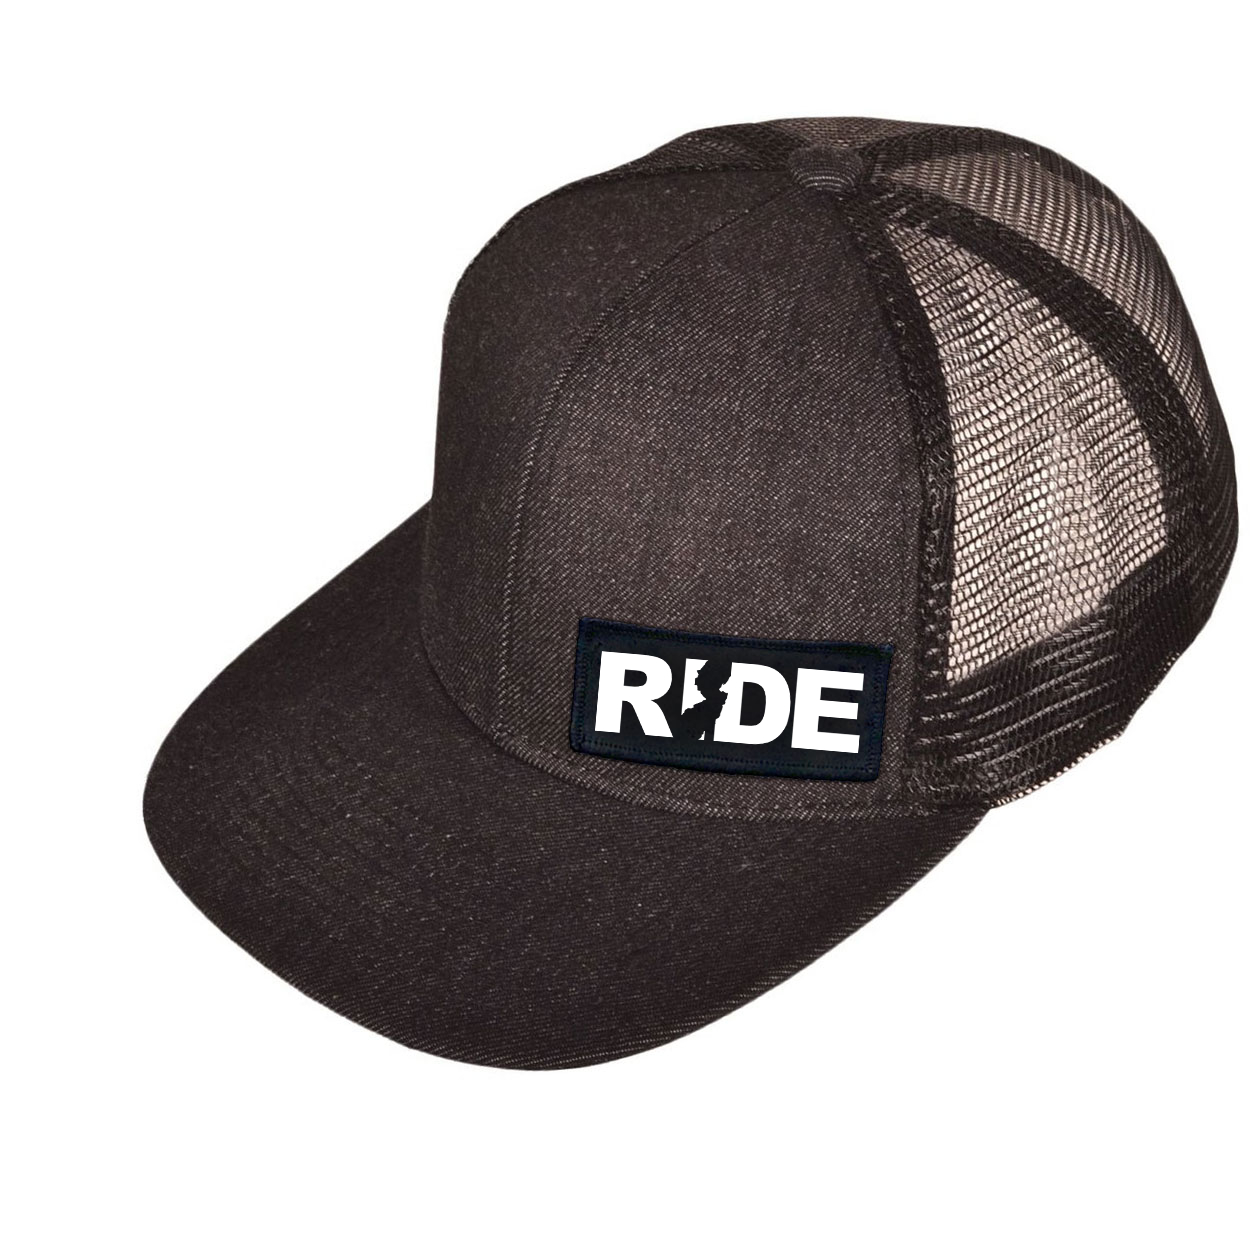 Ride New Jersey Night Out Woven Patch Snapback Flat Brim Hat Black Denim (White Logo)